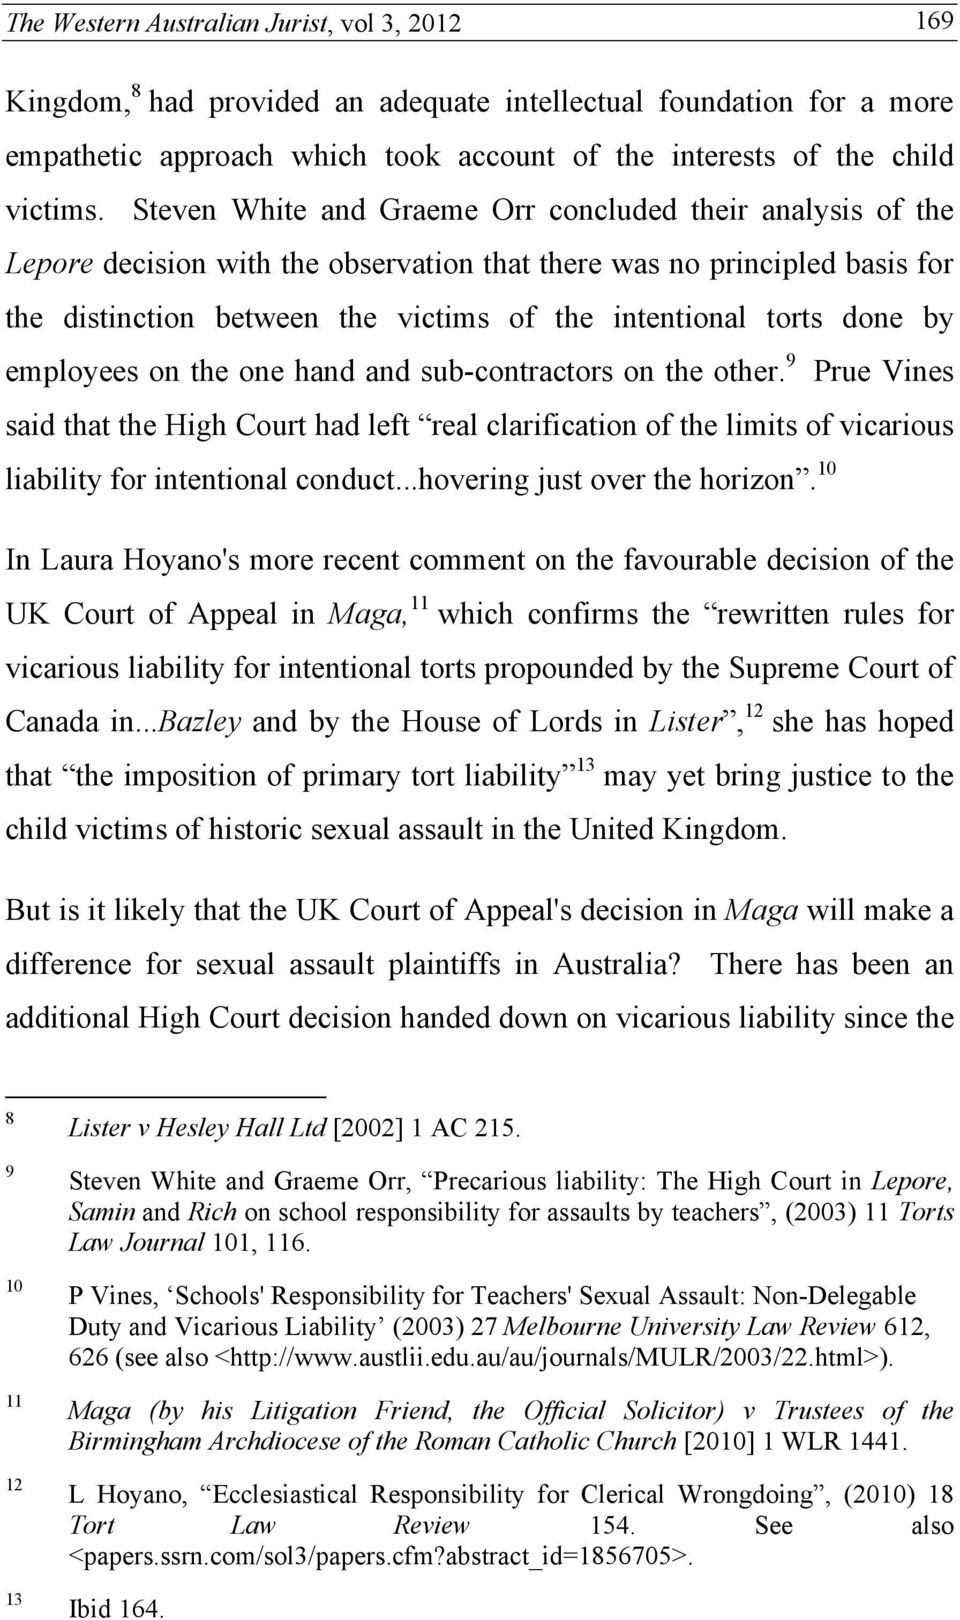 Vicarious Liability Nondelegable Duty And Child Sexual Abuse Is  Done By Employees On The One Hand And Subcontractors On The Other     Thompson Vicarious Liability  Example Of Essay Writing In English also High School English Essay Topics  Sample Essay Thesis Statement